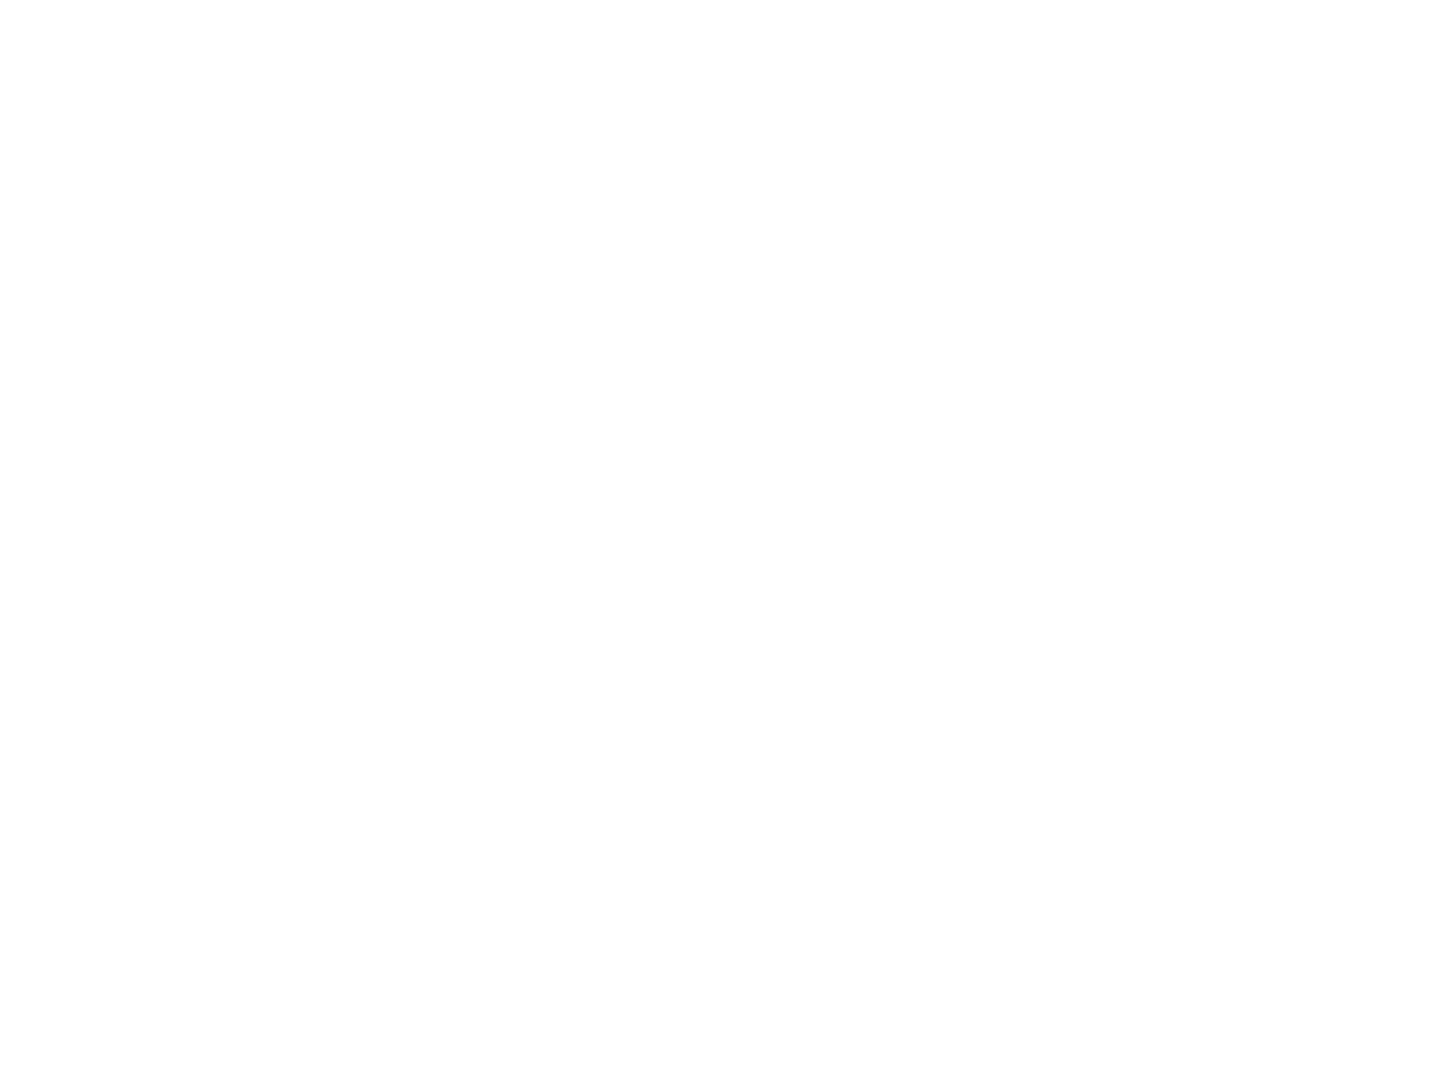 Cooksburg Cafe